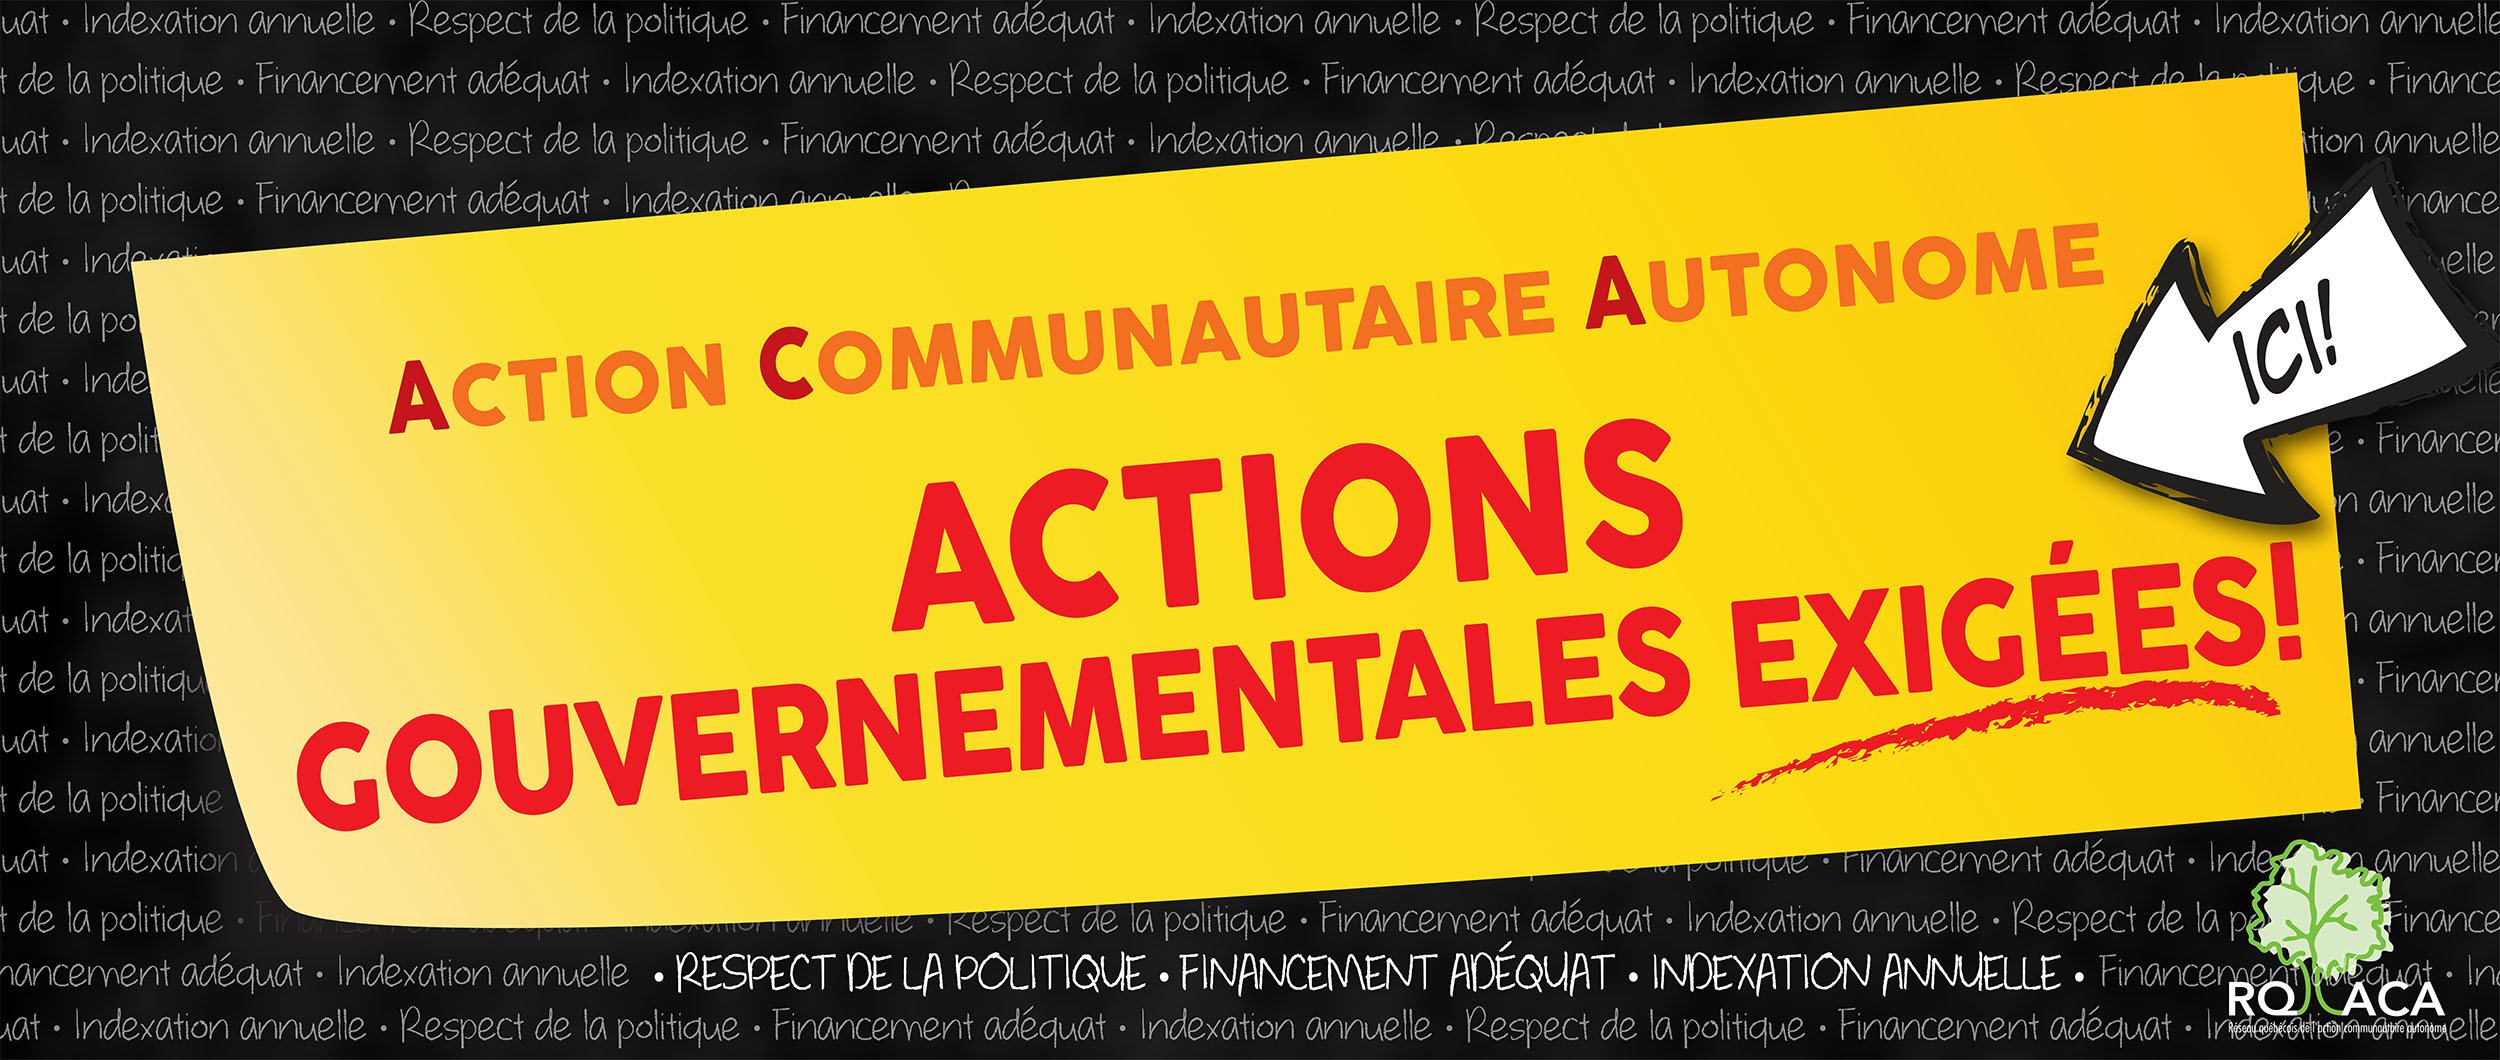 https://mobilisationaca.files.wordpress.com/2015/05/bannic3a8re-campagne-mobilisation-20152.jpg